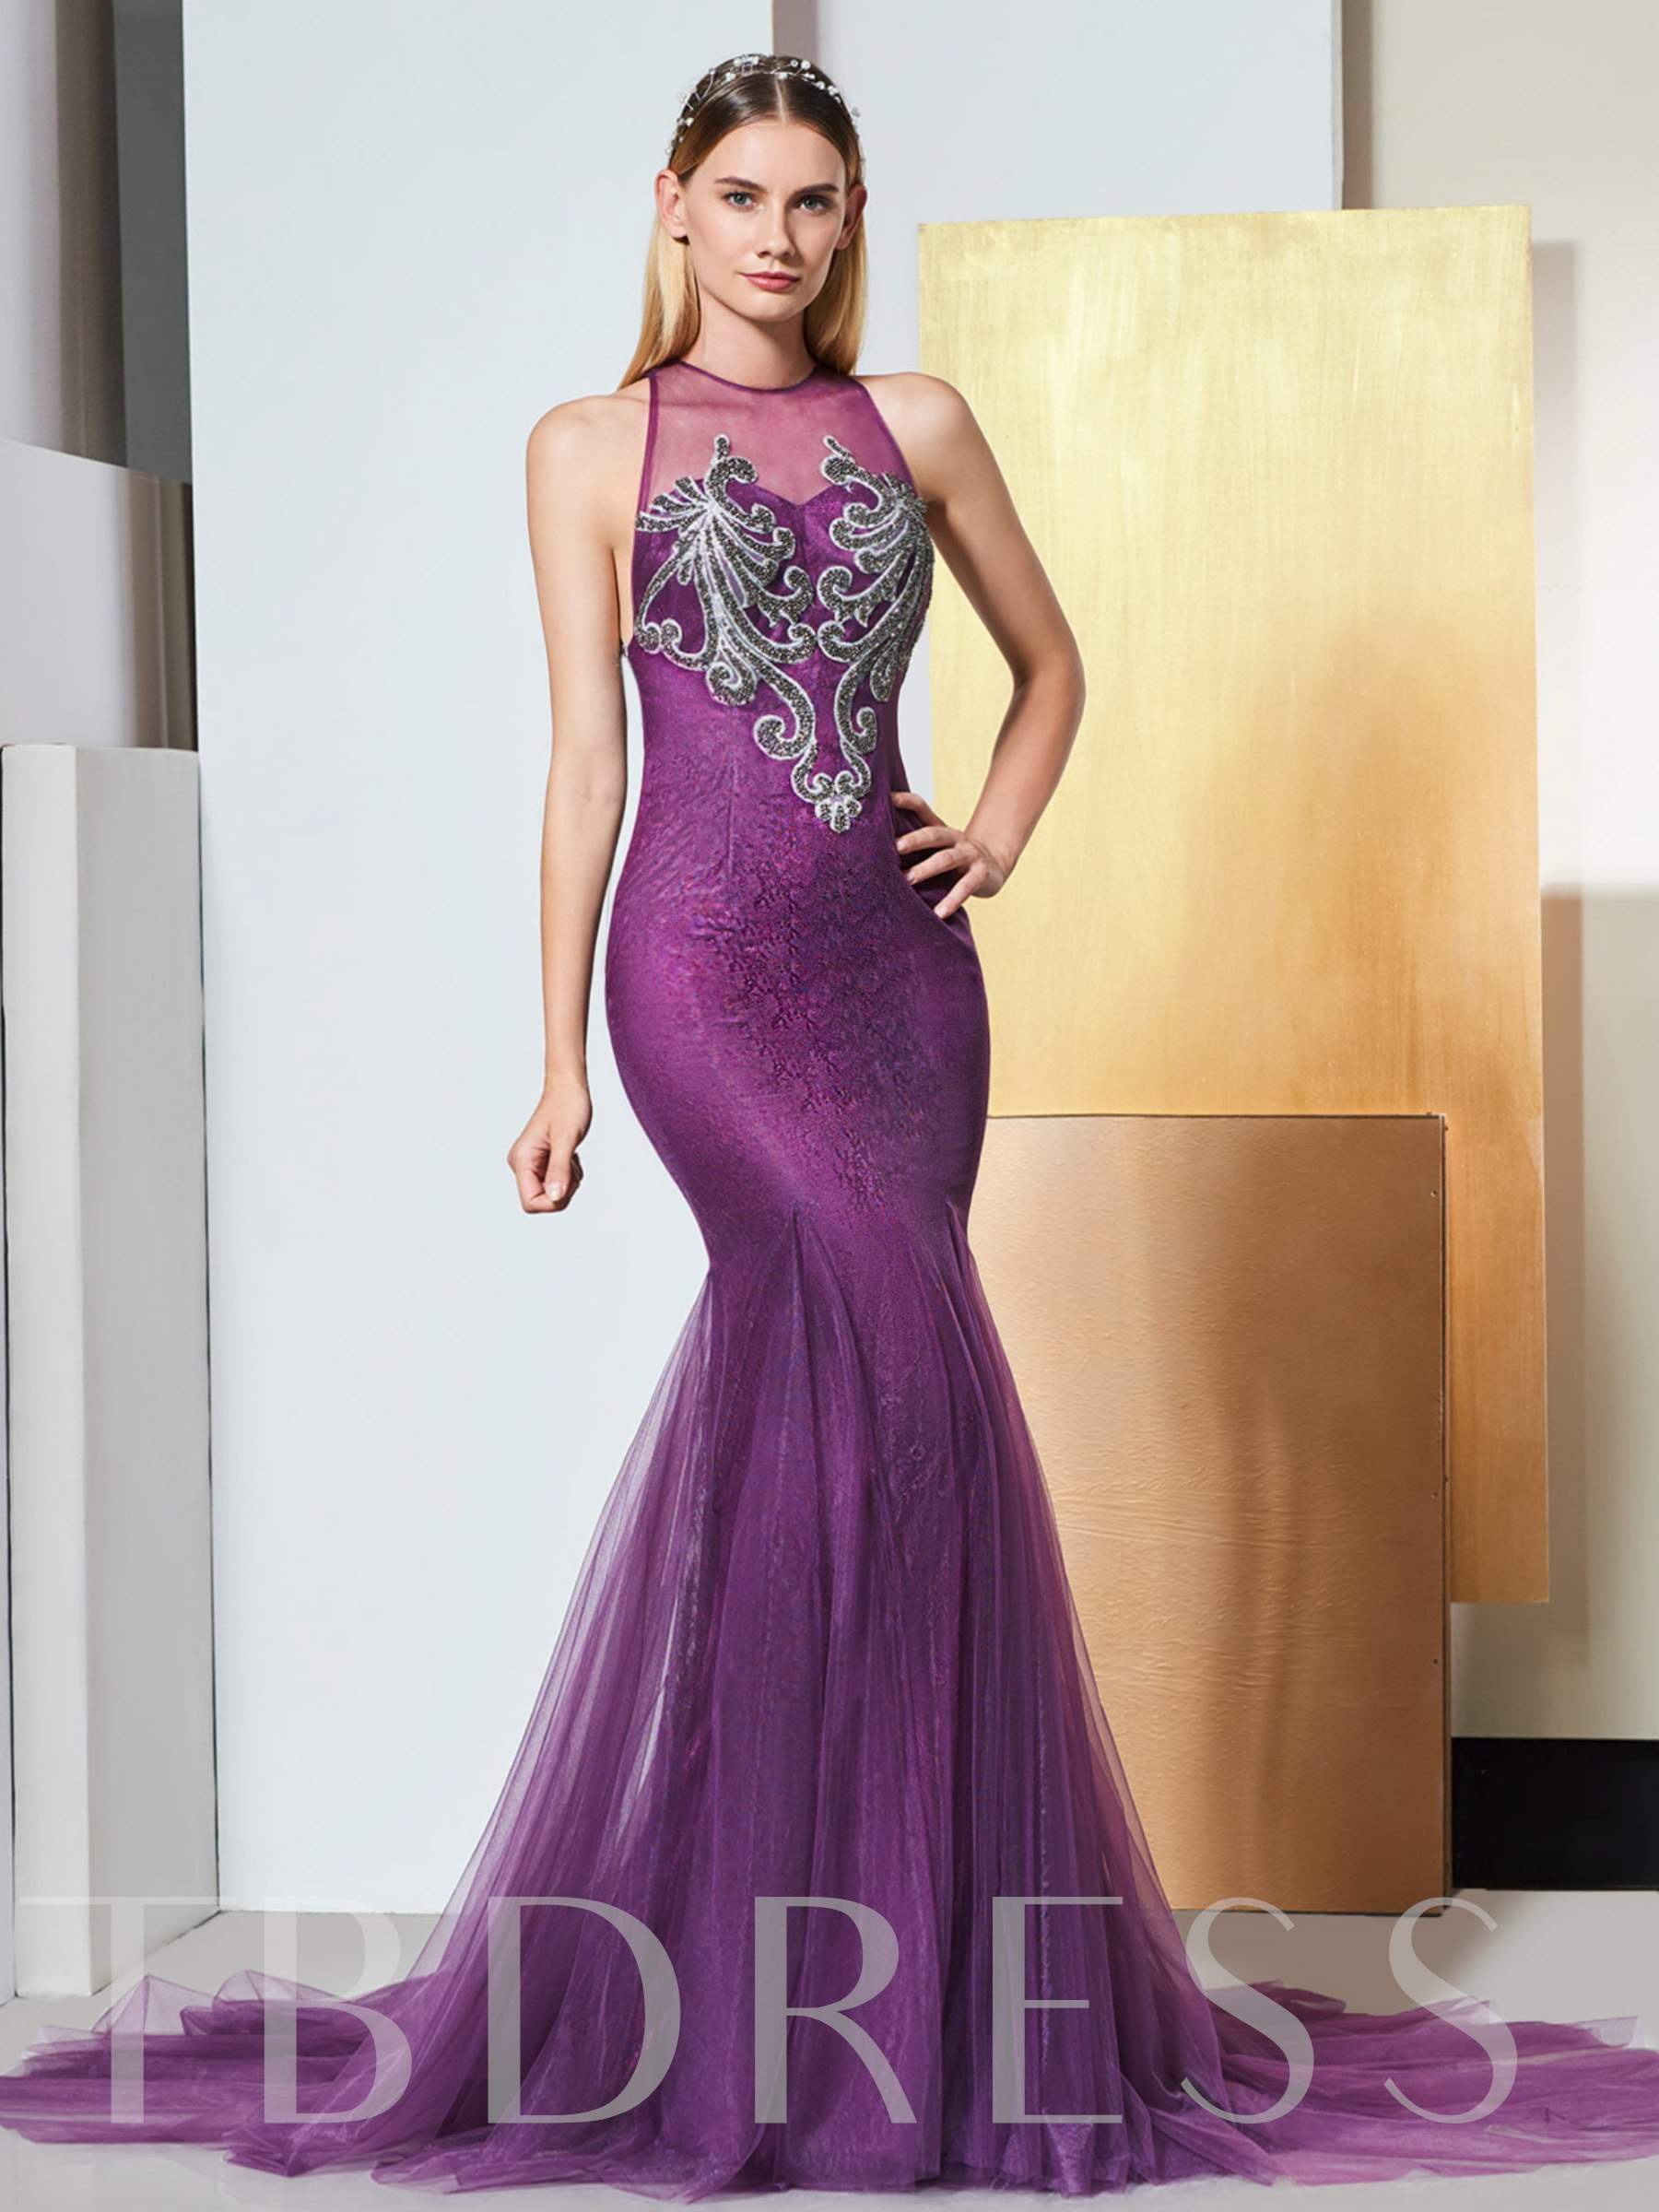 Buy Mermaid Scoop Appliques Lace Evening Dress, Spring,Summer,Fall,Winter, 13334962 for $177.44 in TBDress store